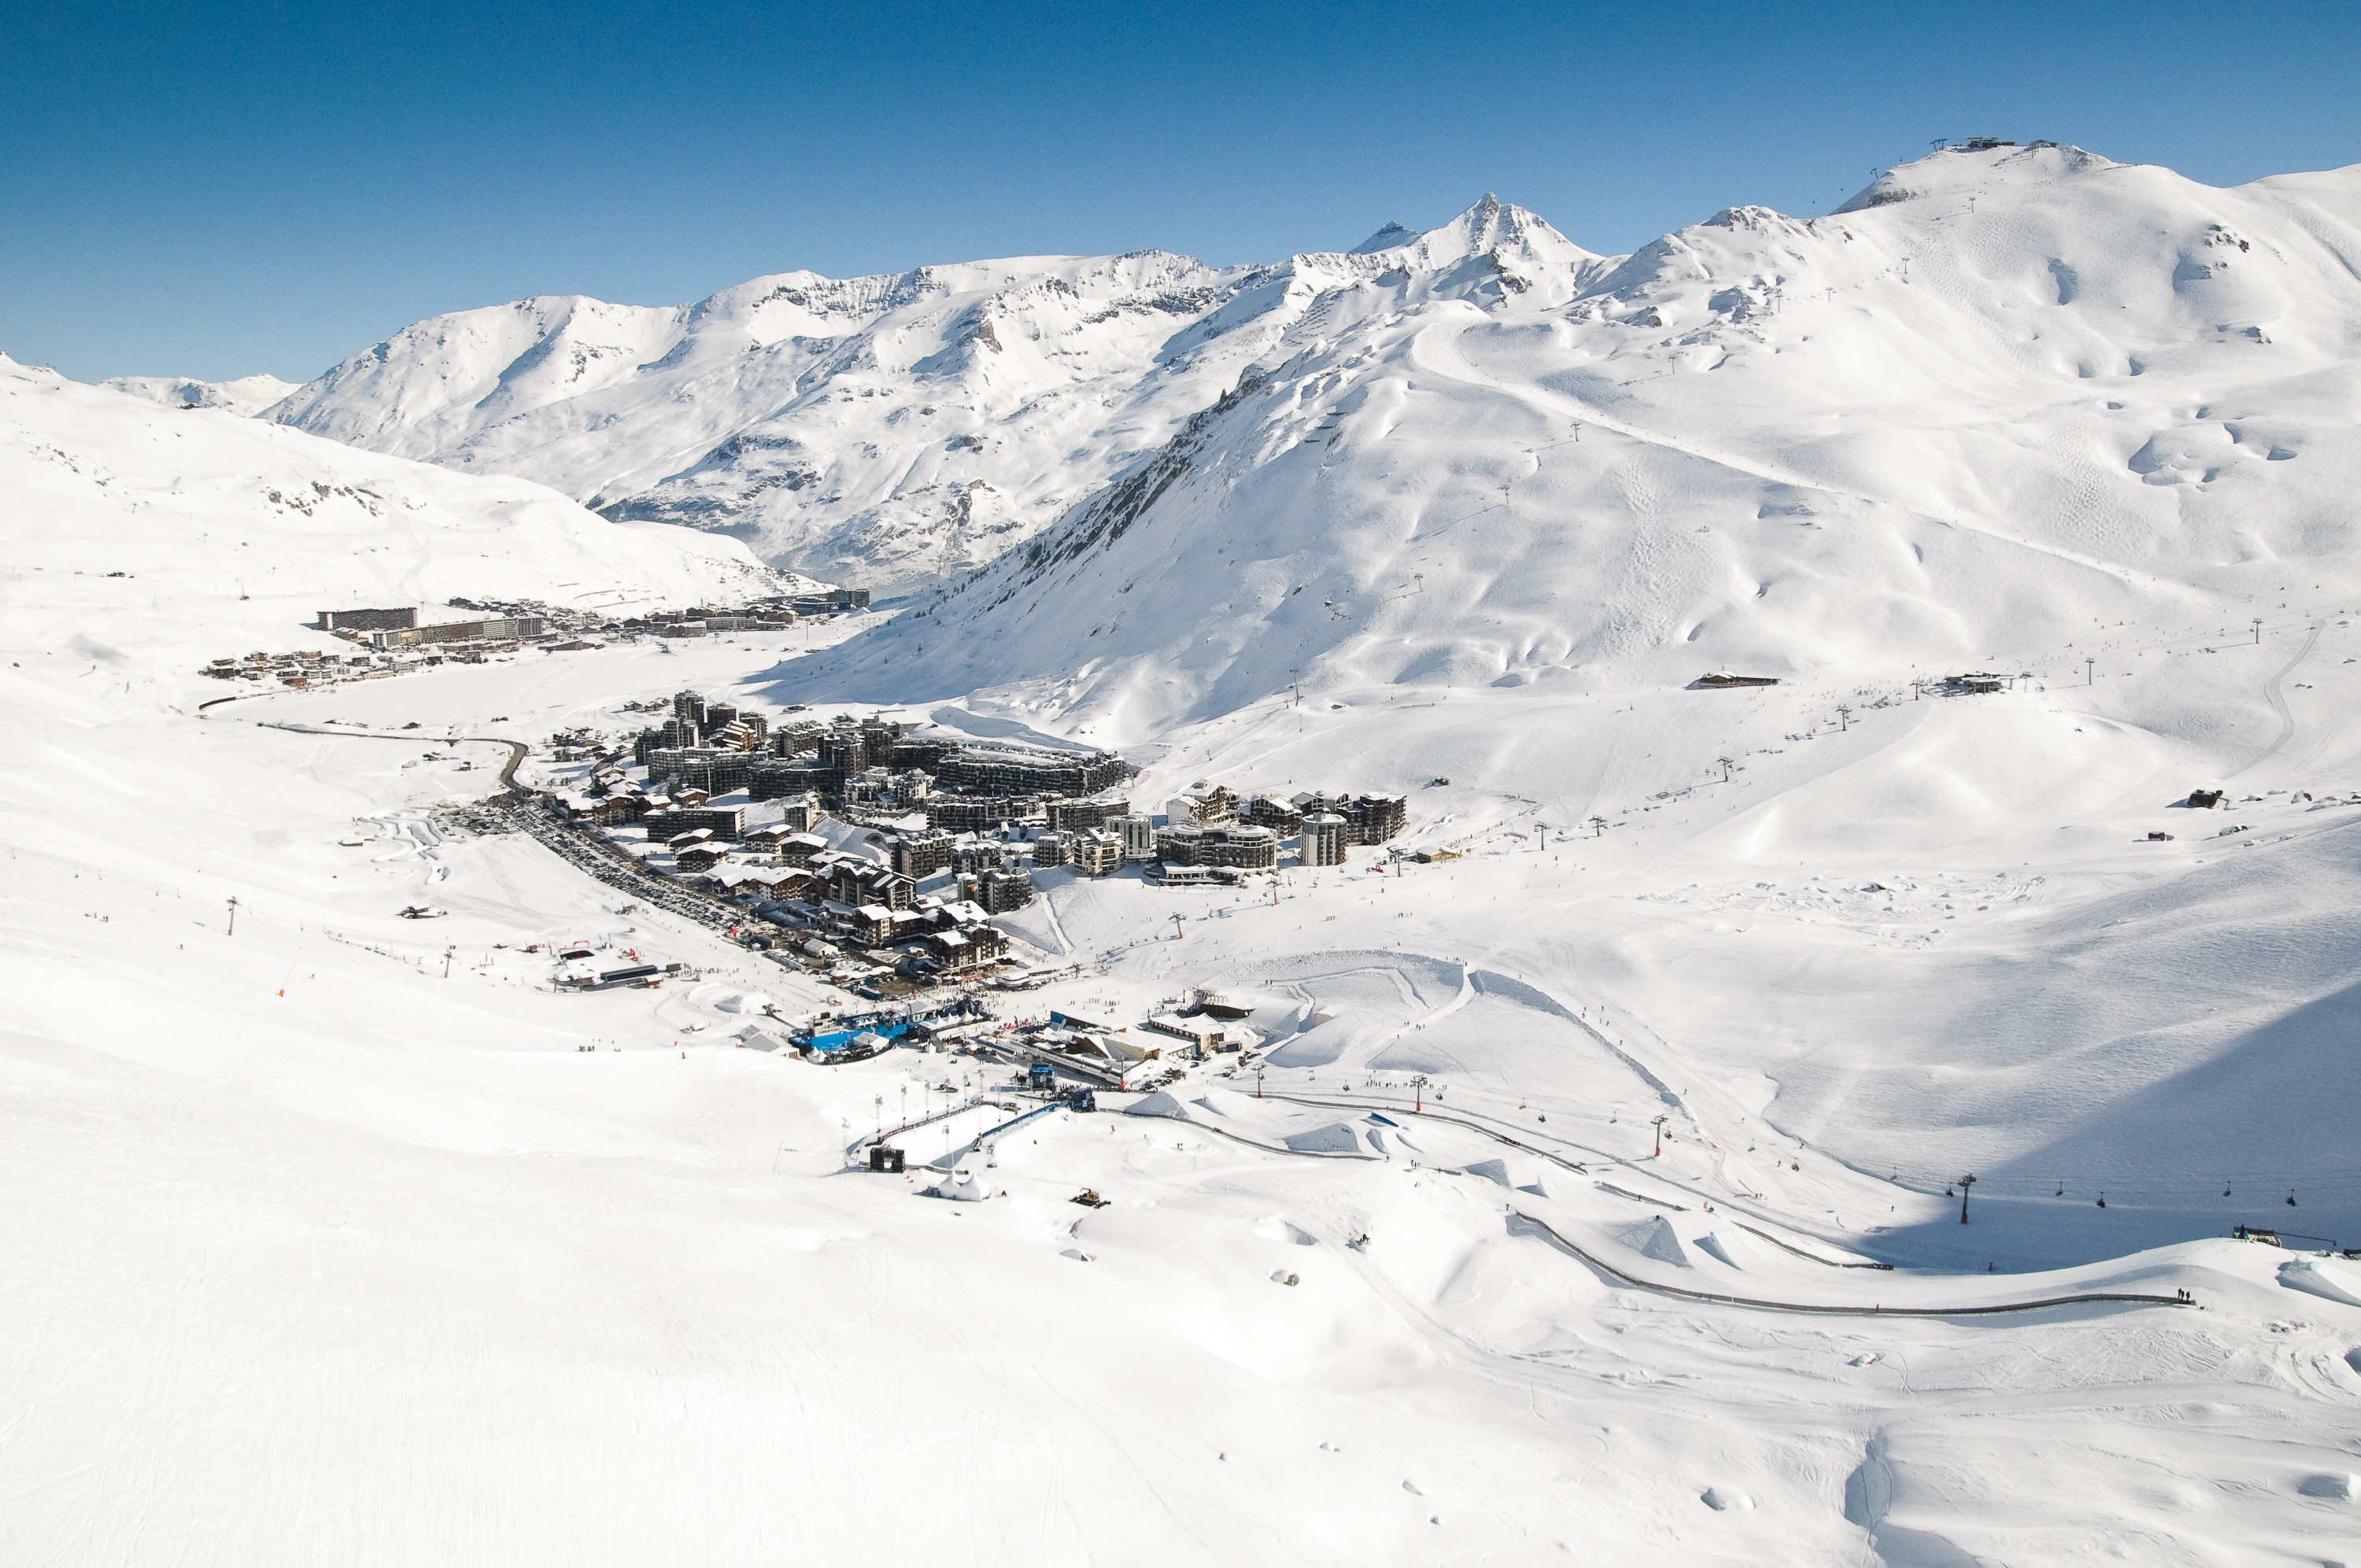 Tignes resort, Franceundefined